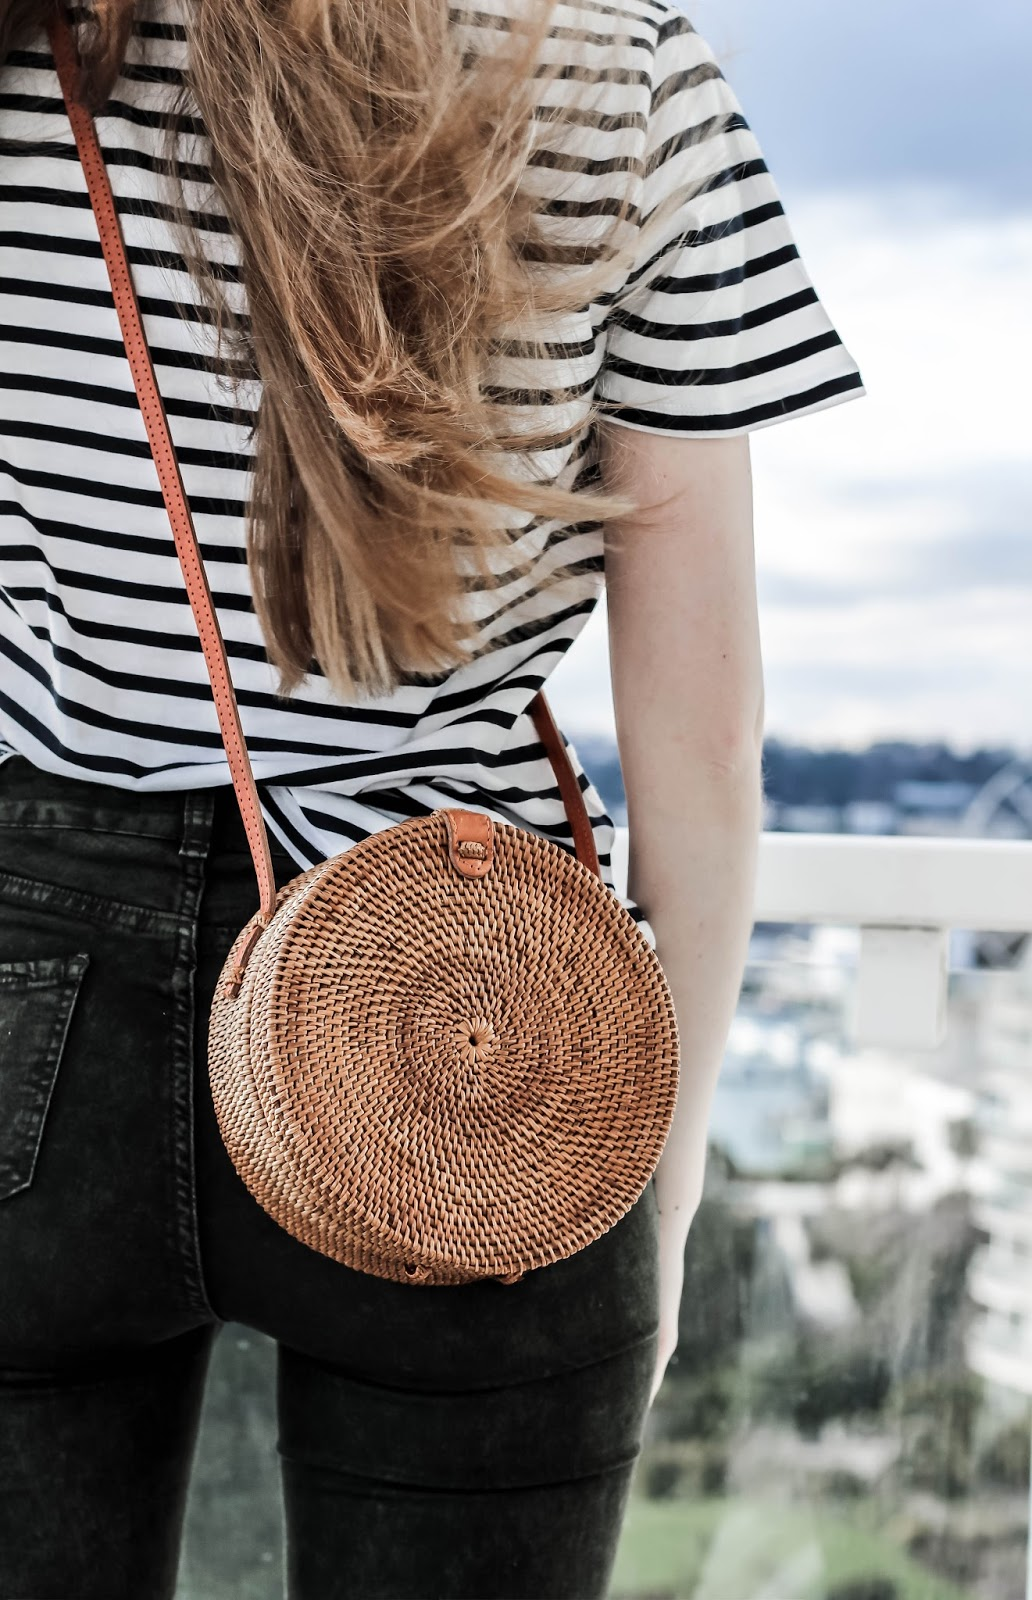 Urban Outfitters Circle Straw Crossbody Bag Review